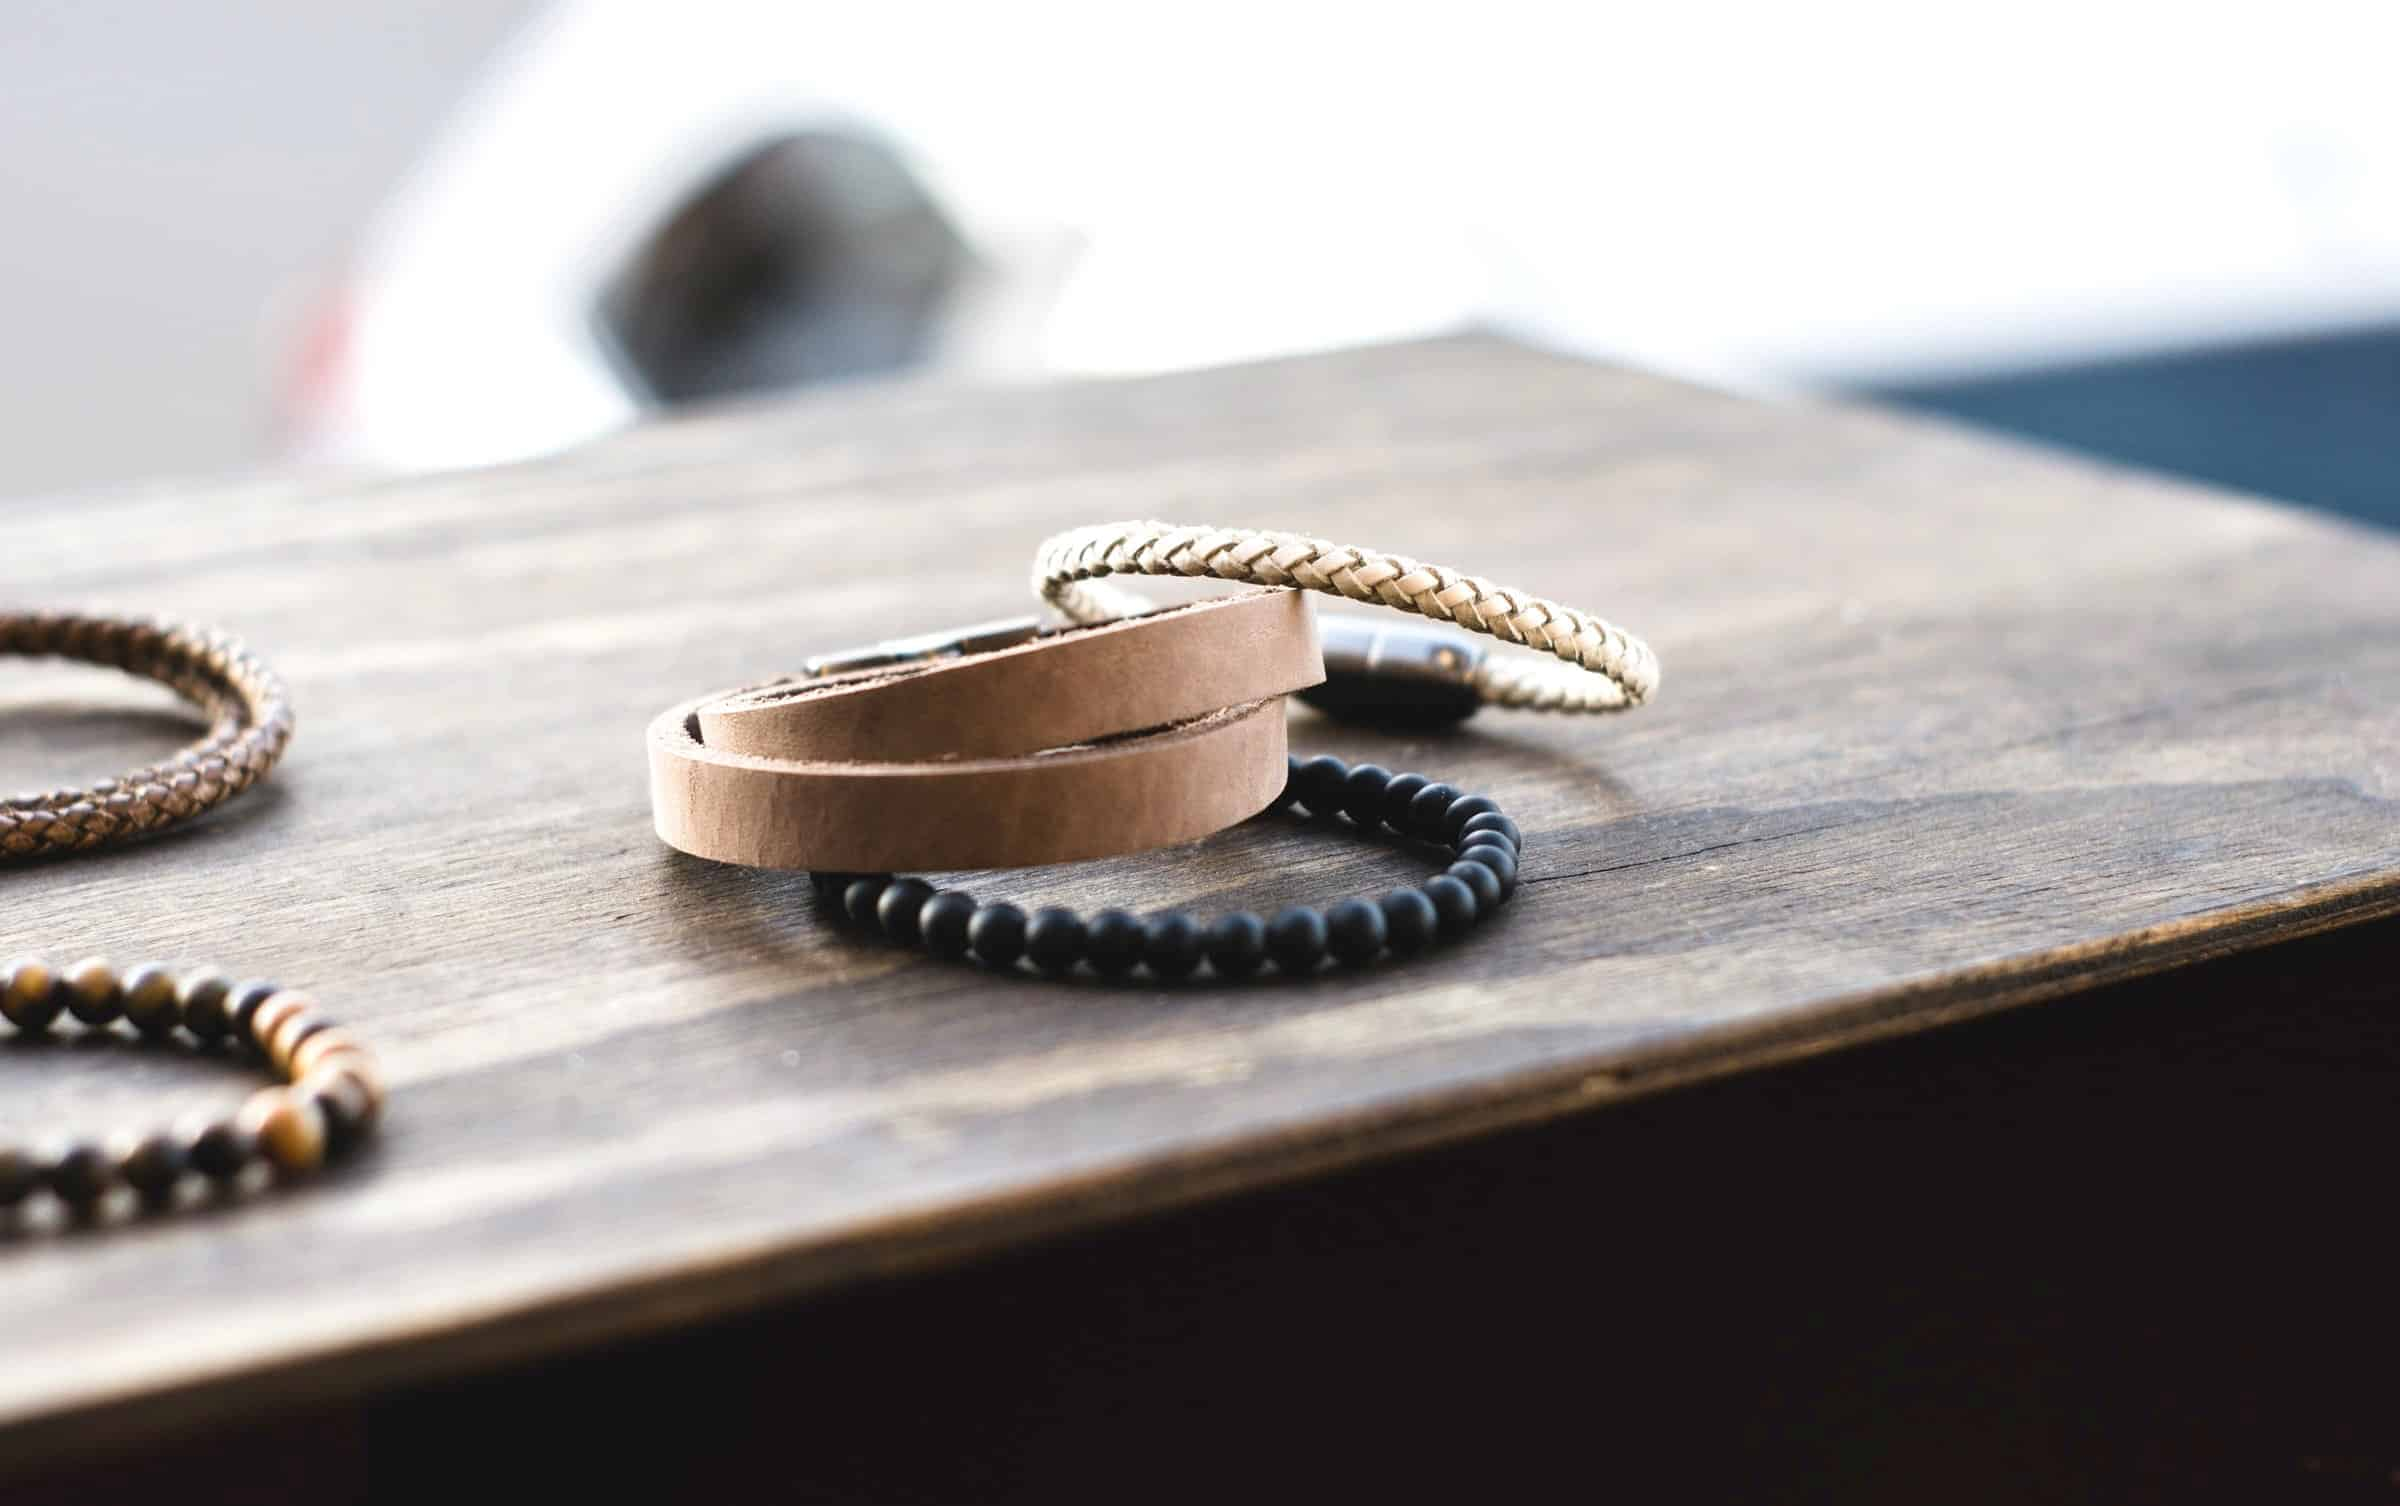 Leather Rings - Liberty Leather Goods